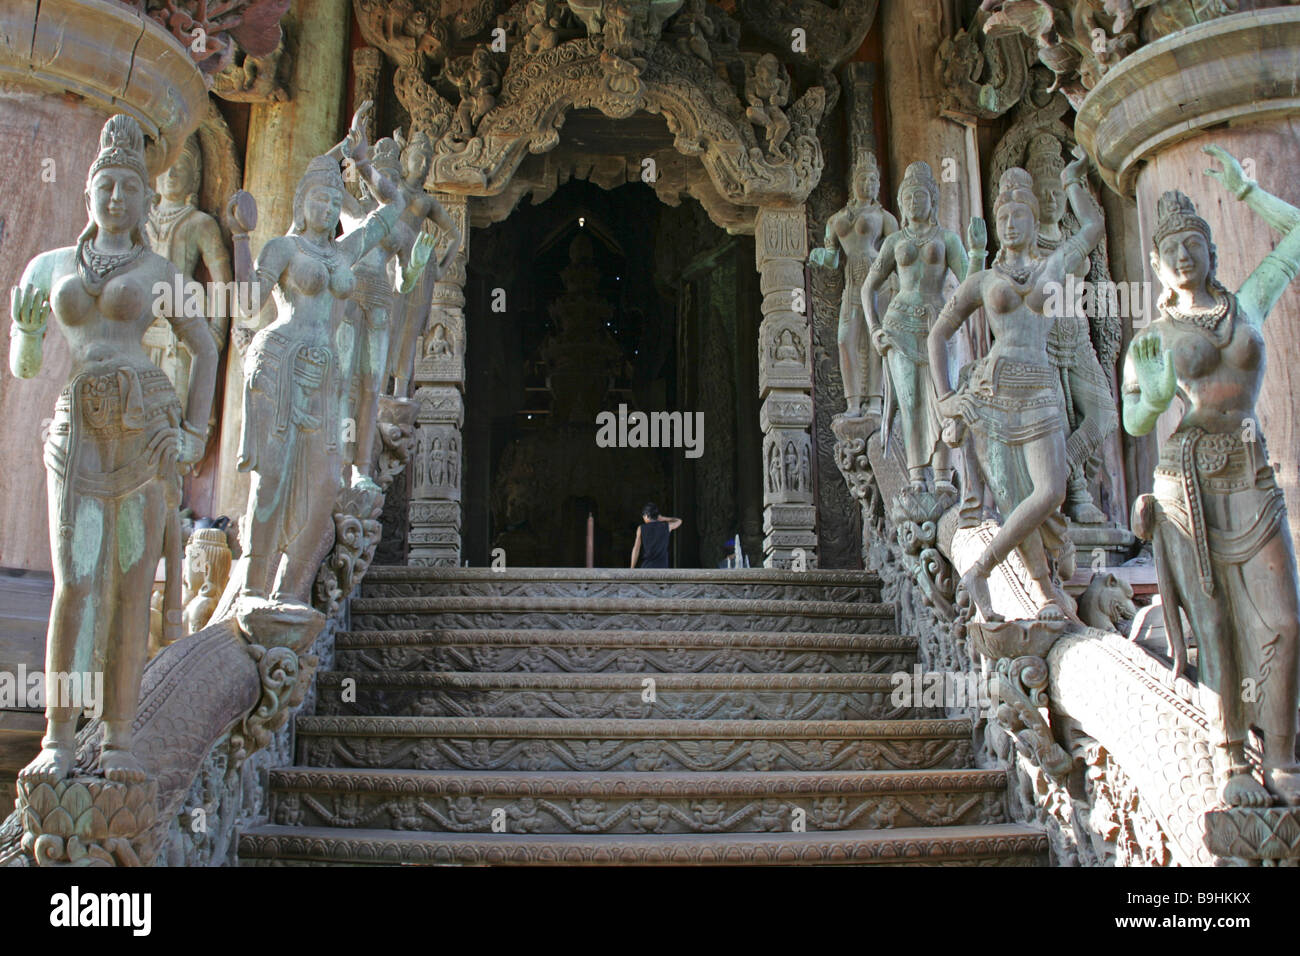 Thailand Pattaya Wood Temples Sanctuary Of Truth Stairway Entrance Architecture Asian Asia Reception 2006 Outside